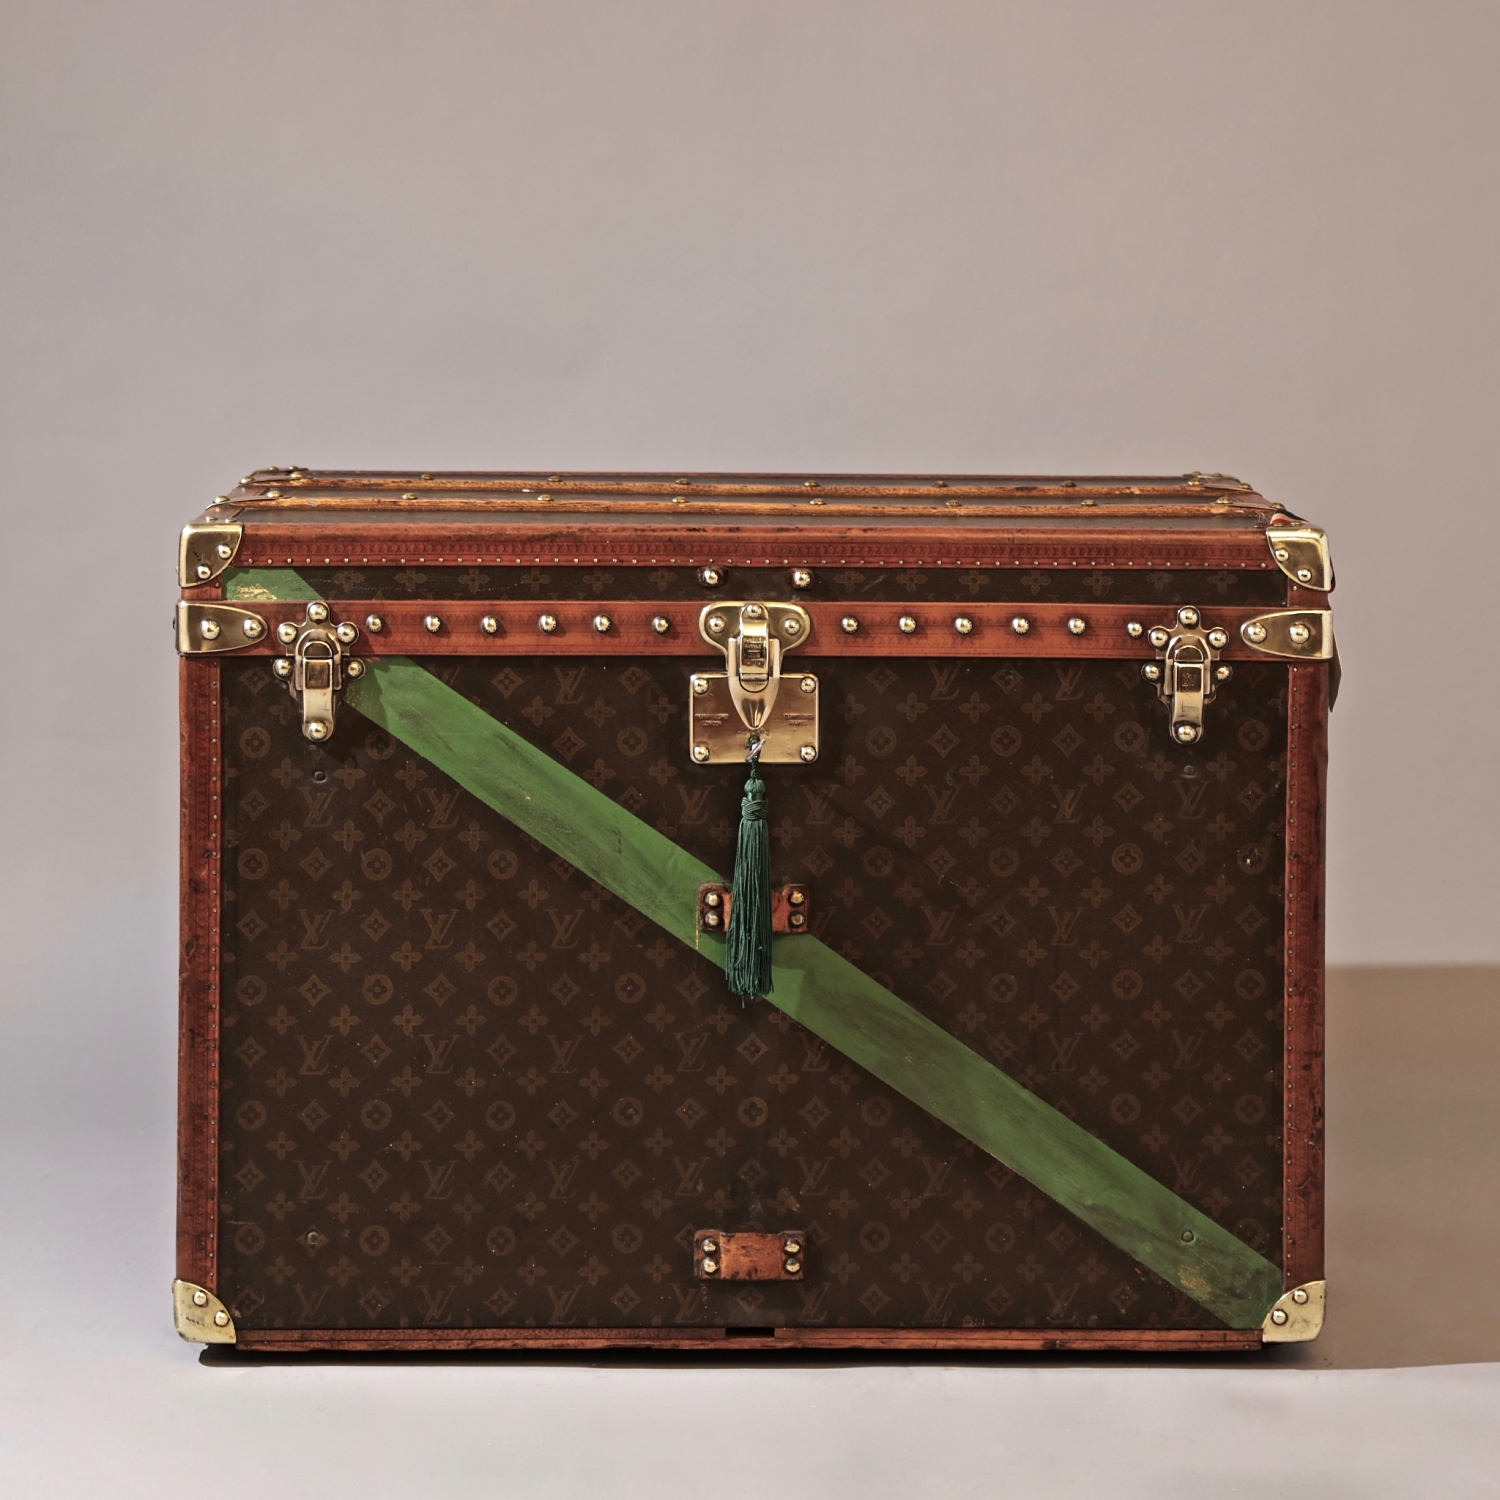 the-well-traveled-trunk-louis-vuitton-thumbnail-product-5644A